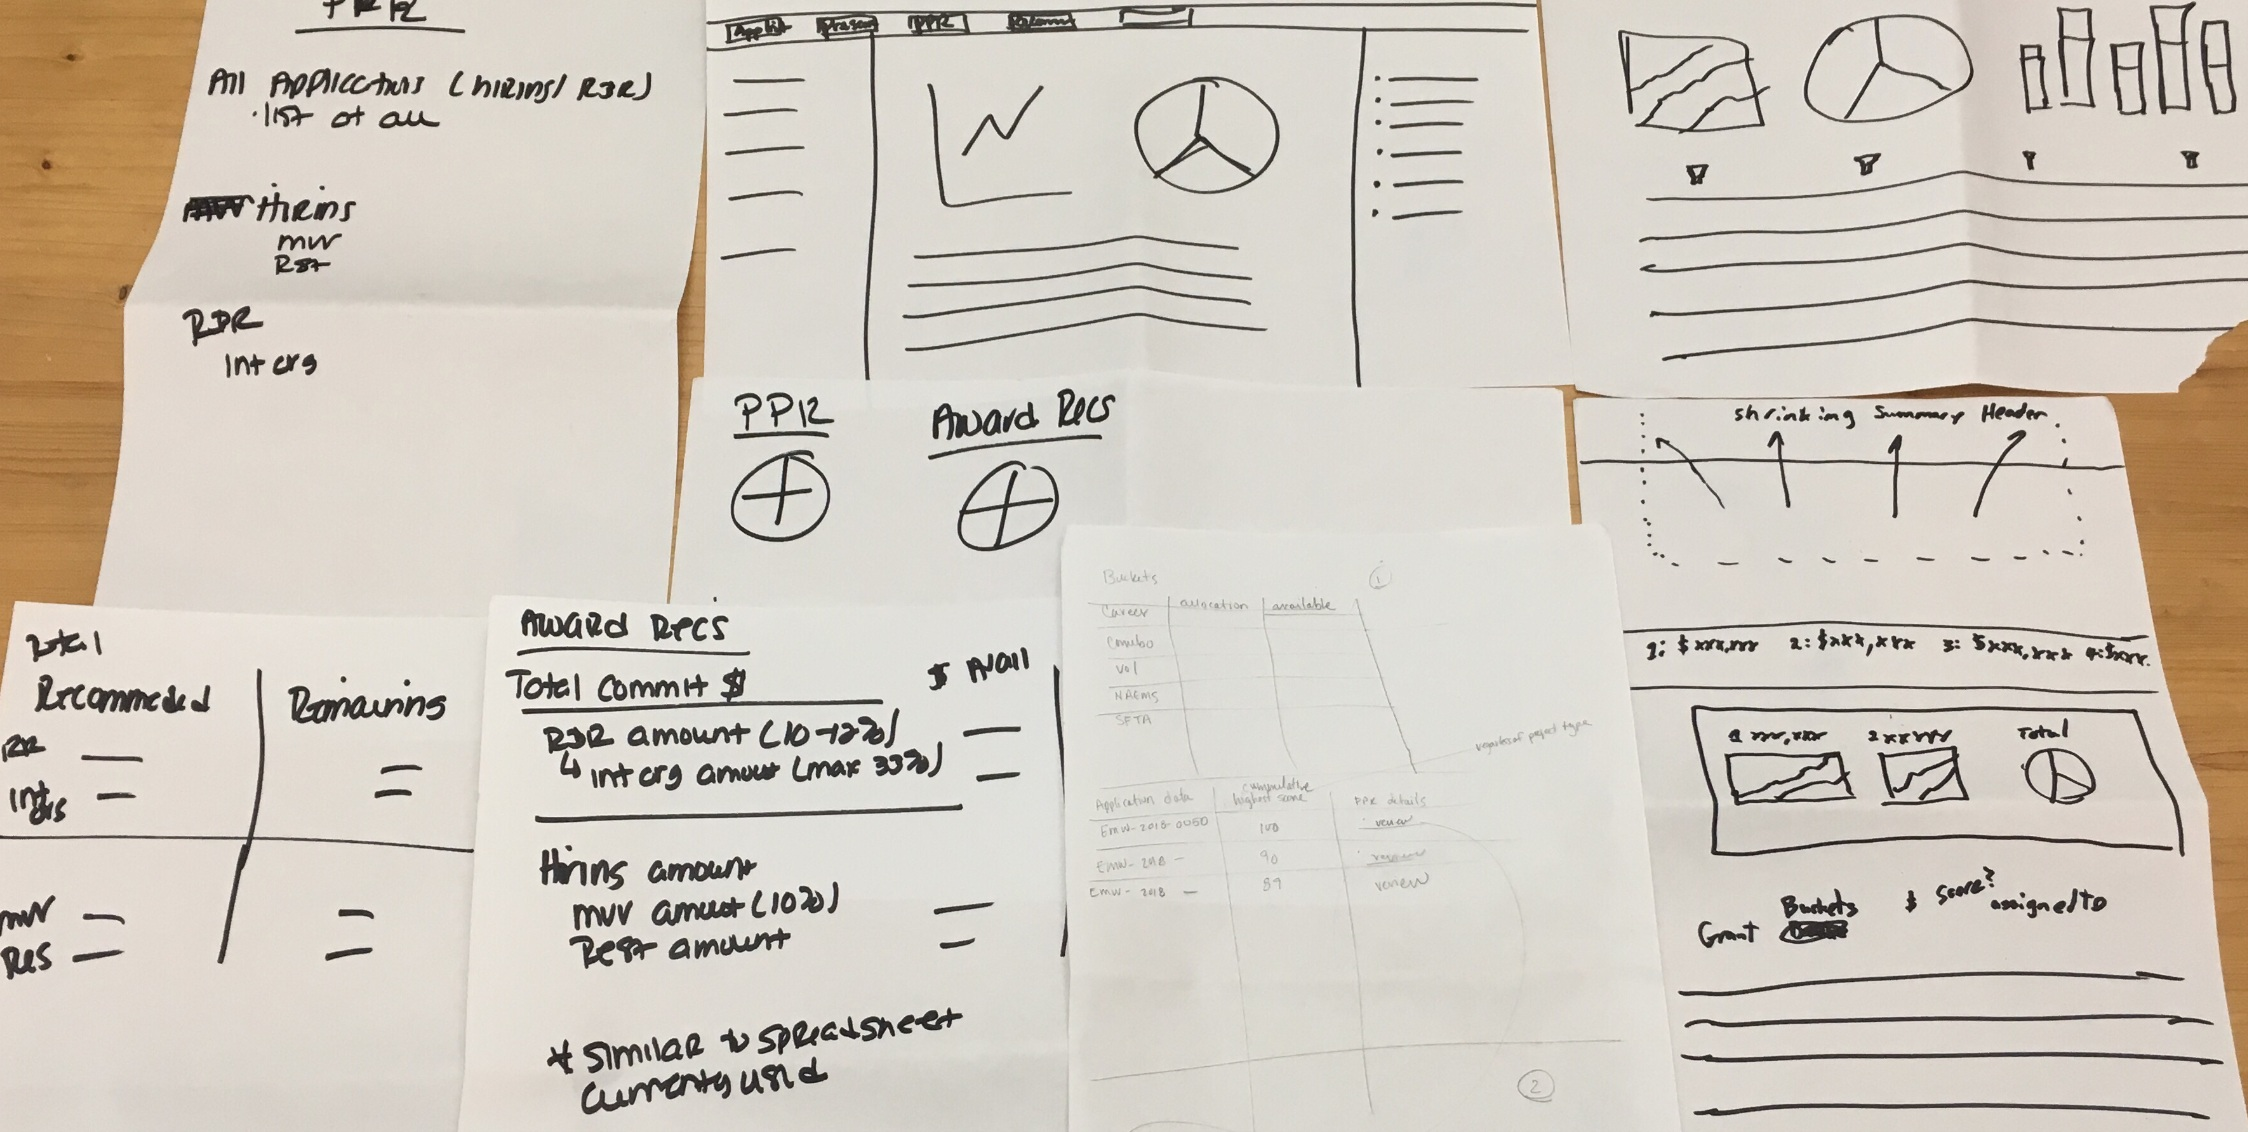 Stakeholders co-designed parts of the application